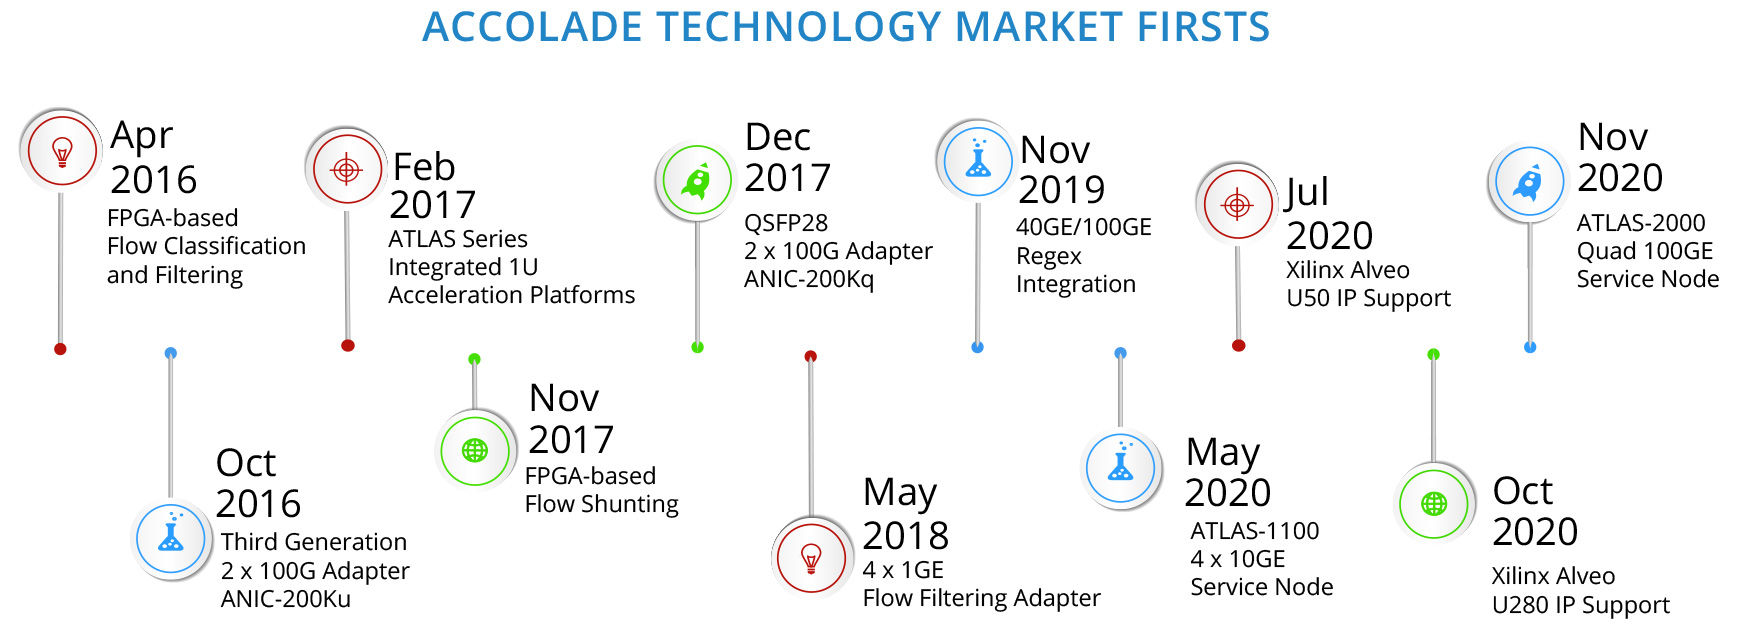 Accolade Technology Market Firsts Diagram